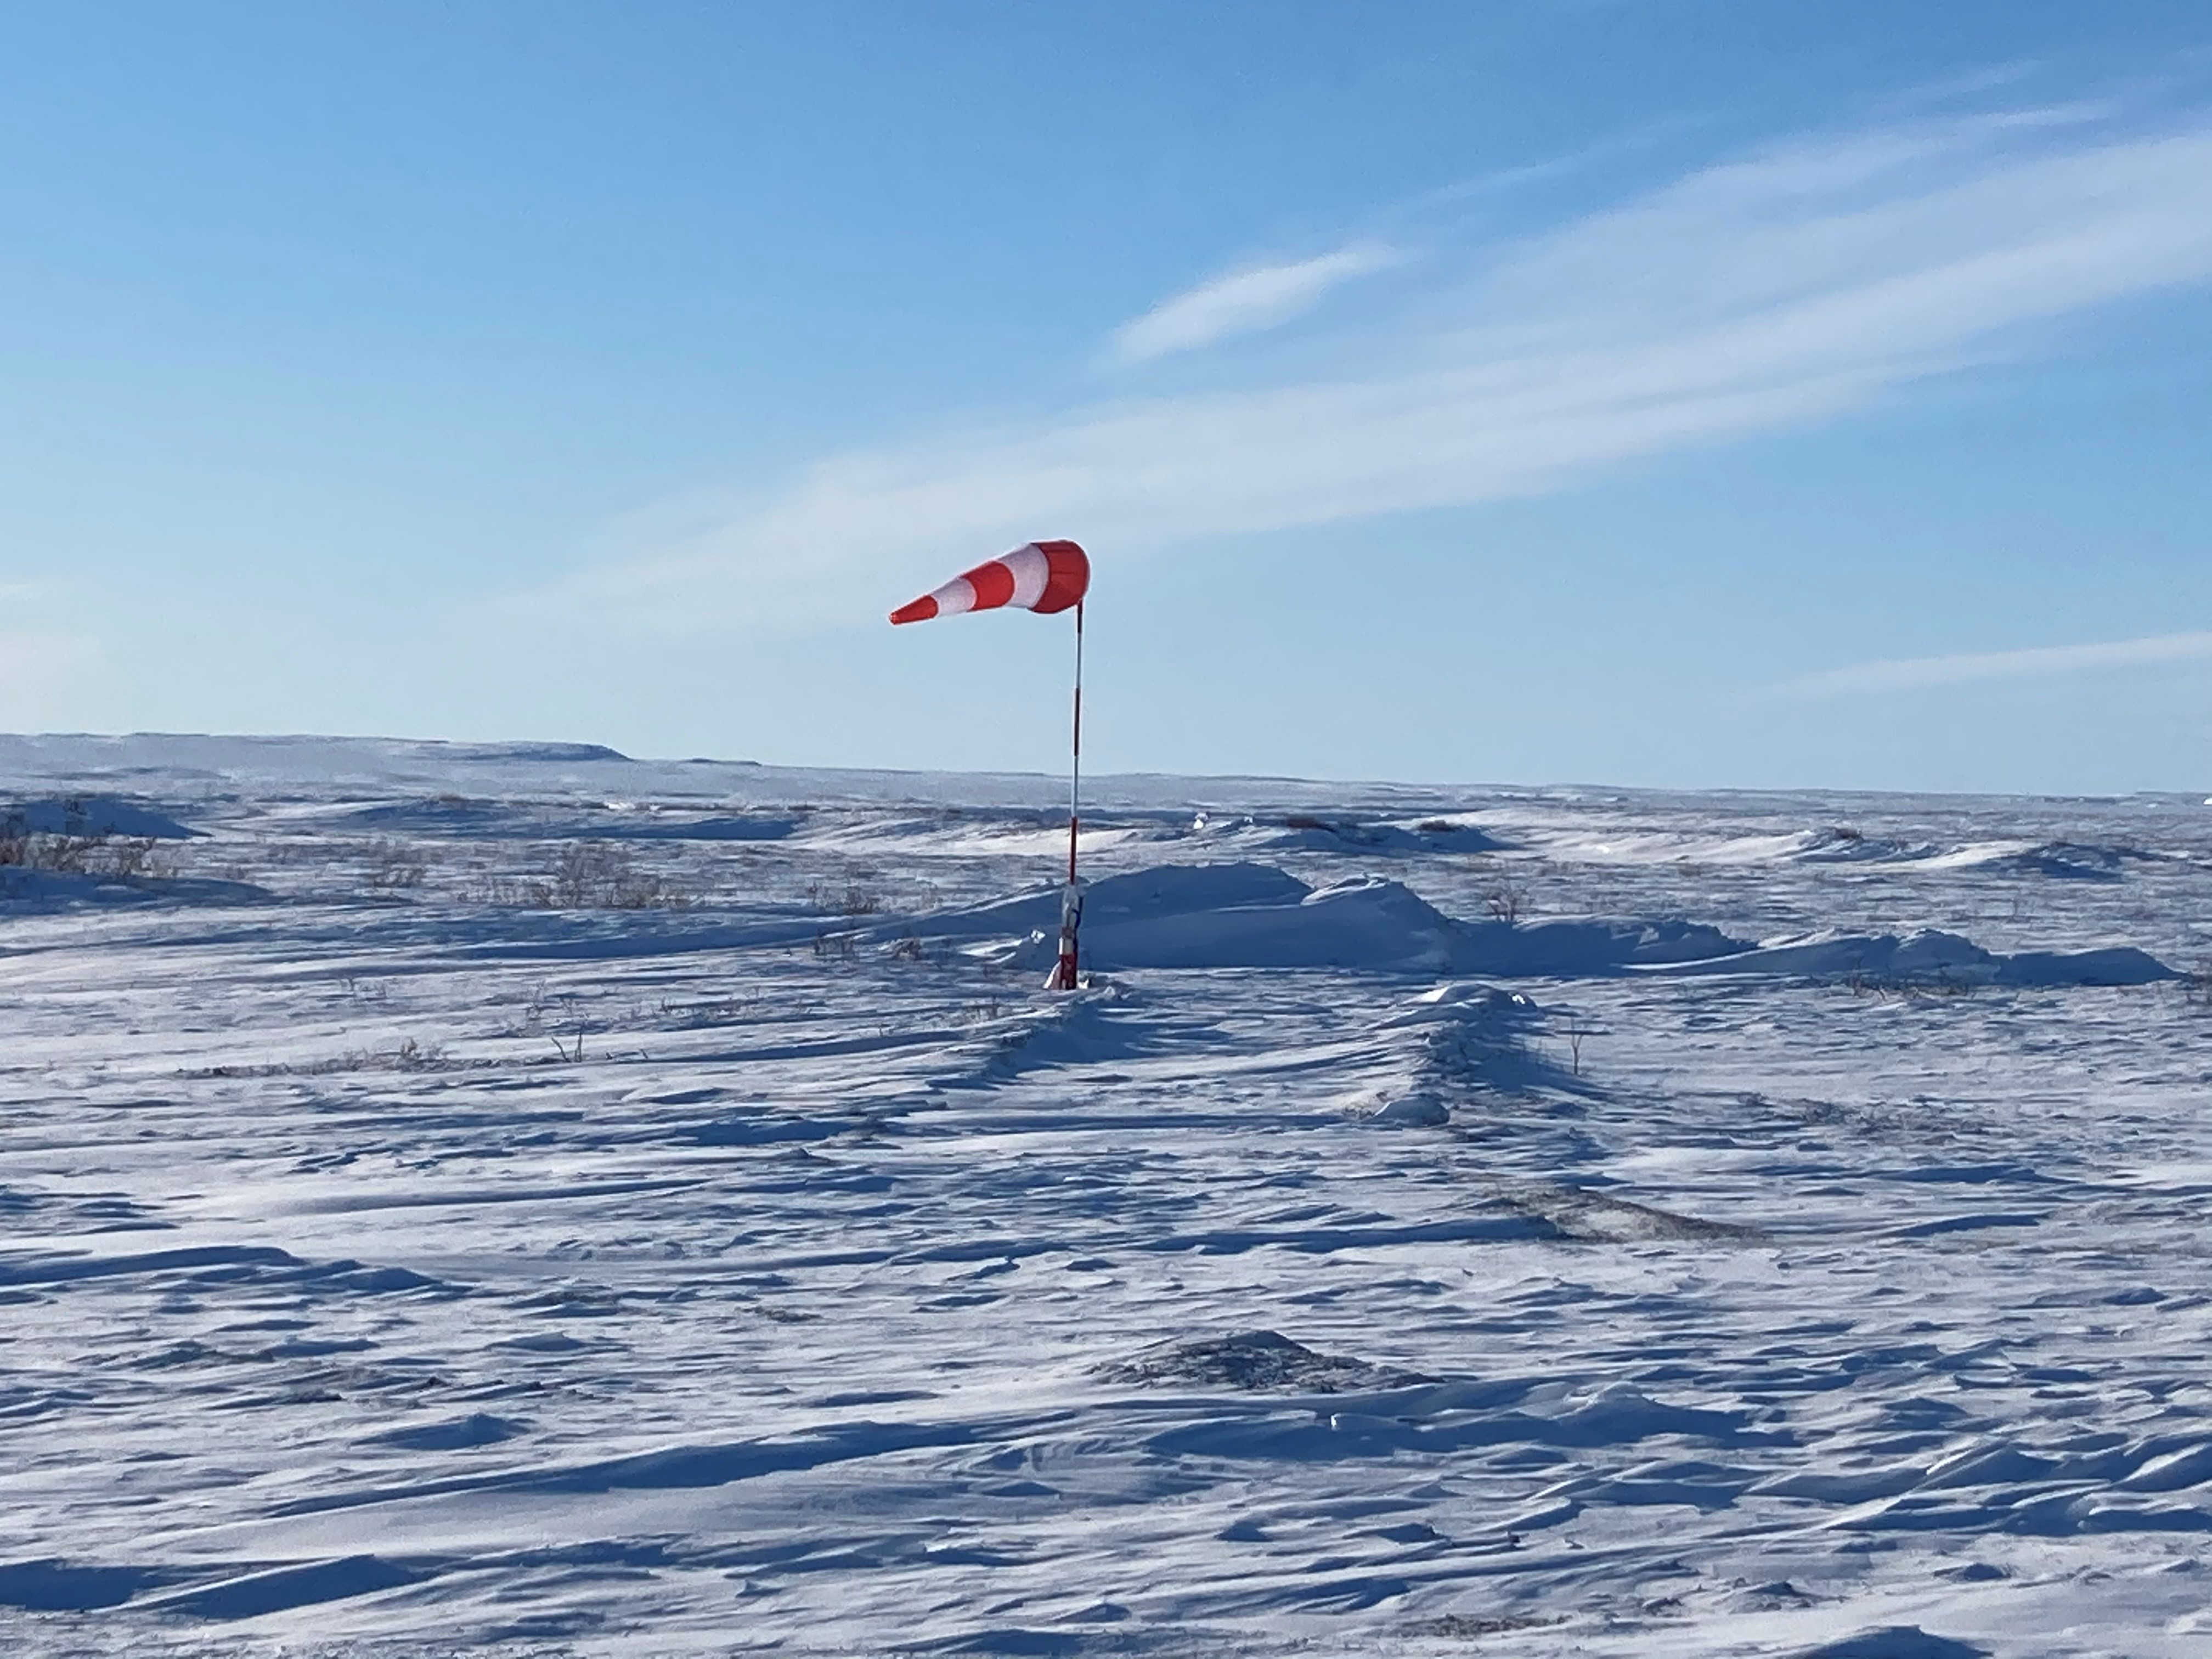 A windsock in the hamlet of Kugluktuk, Nunavut, shows strong winds while the reconnaissance team conducts airfield infrastructure assessments on March 10, 2021. PHOTO: Captain Esteban Simard